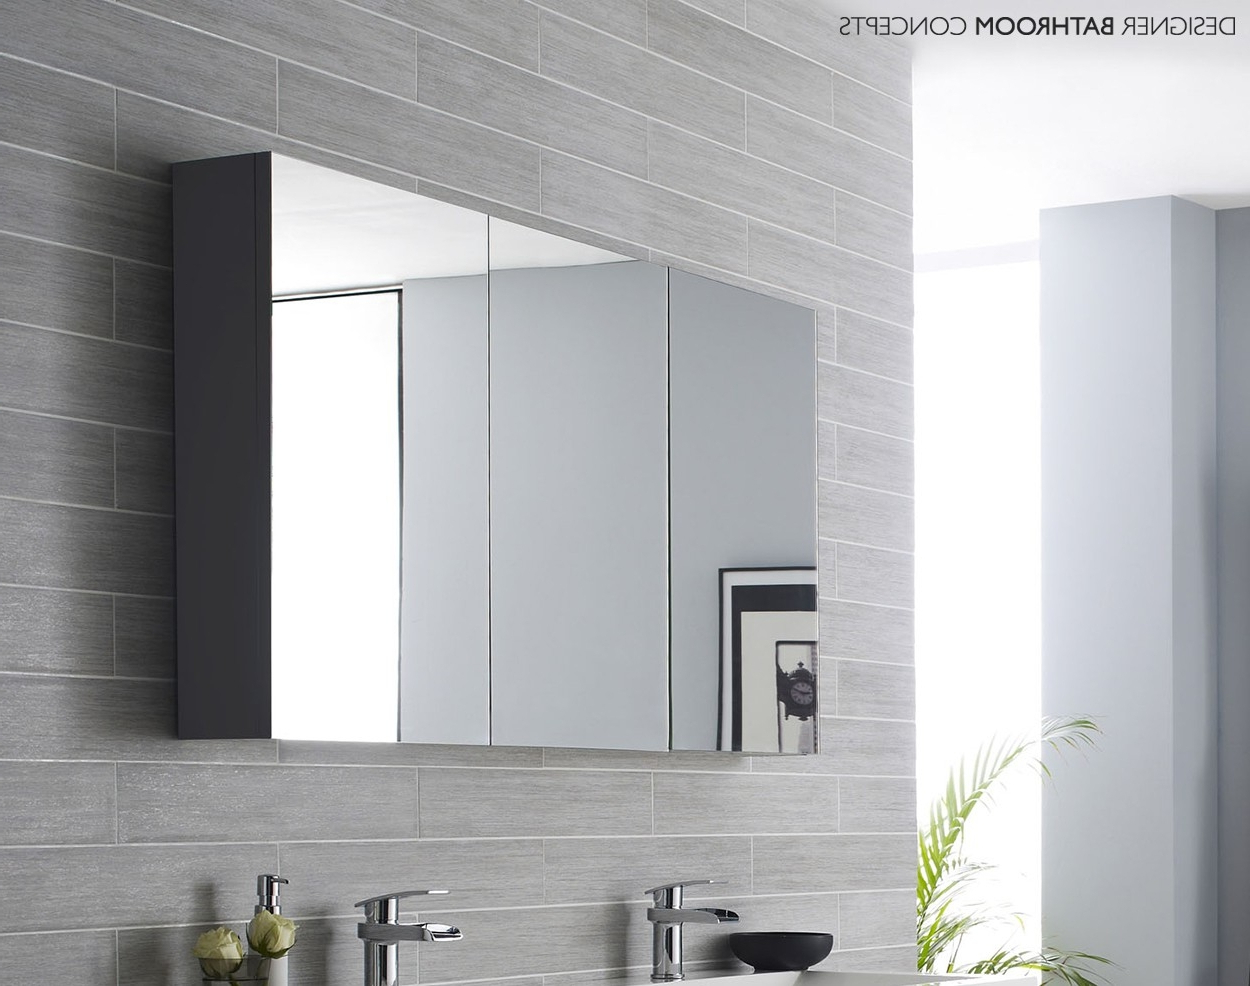 Bathroom Wall Mirror Cabinets Within Popular Top 30 Beautiful Bathroom Mirror Cabinet With Light Modern Vanity (View 6 of 20)